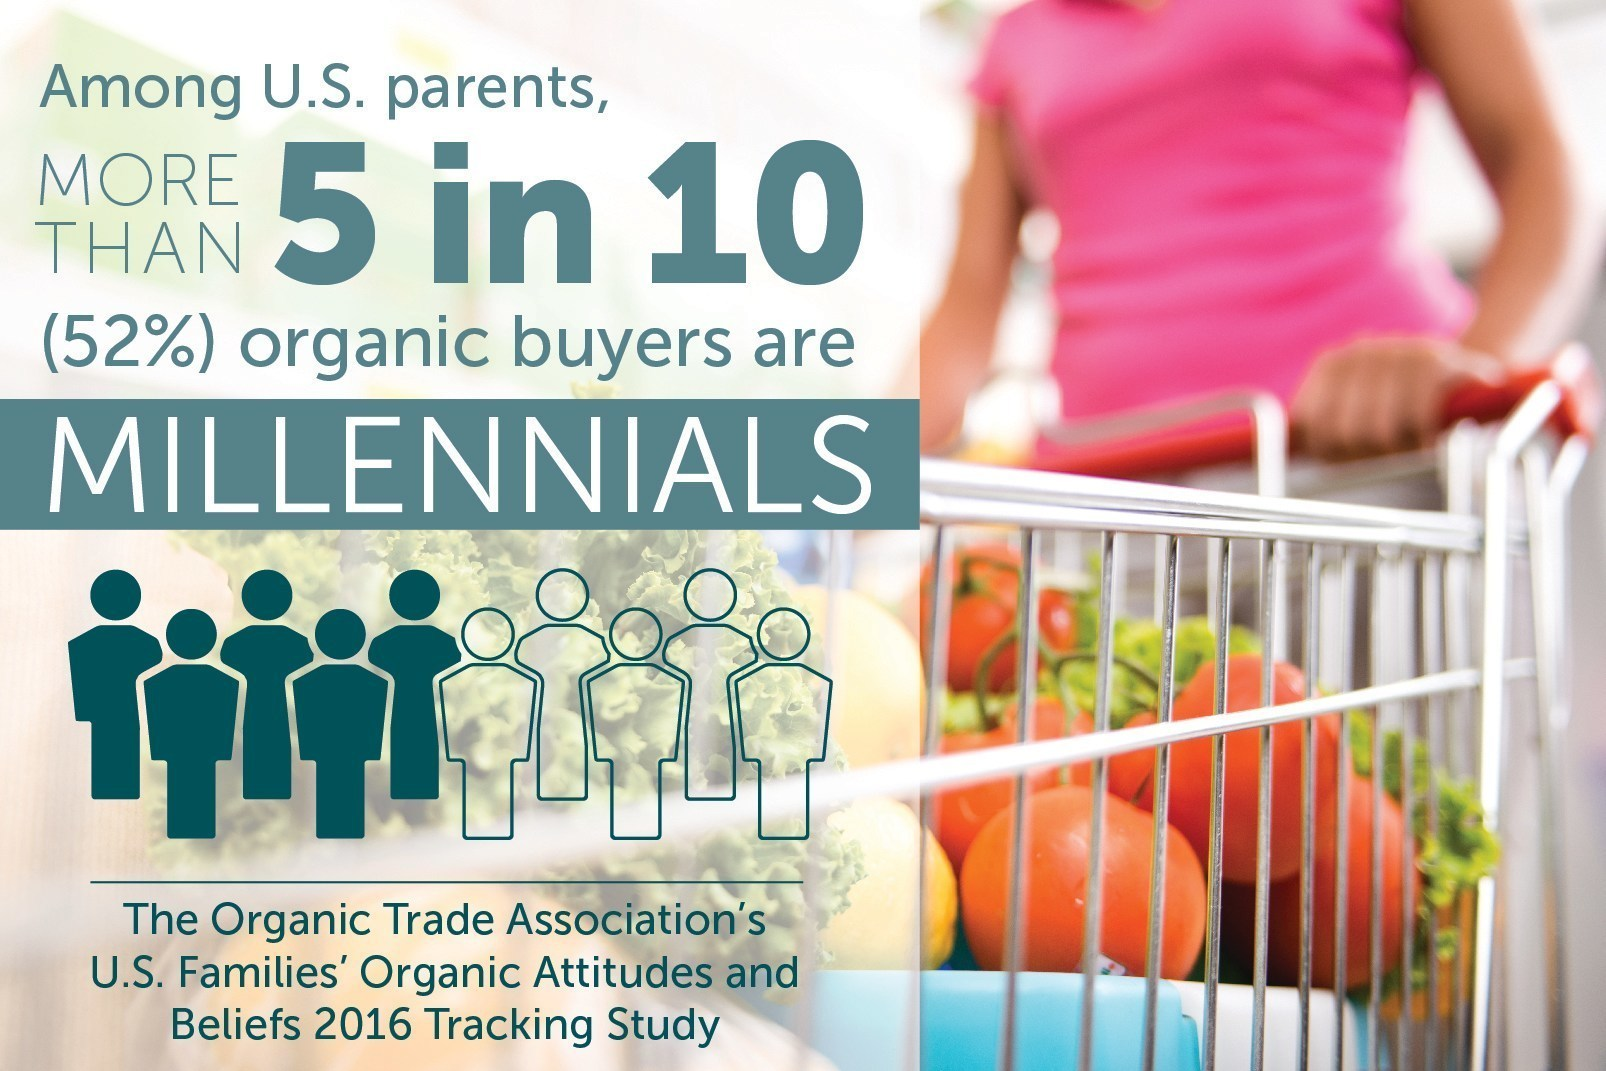 More than 50 percent of U.S. parents who buy organic products are Millennials. (PRNewsFoto/Organic Trade Association)